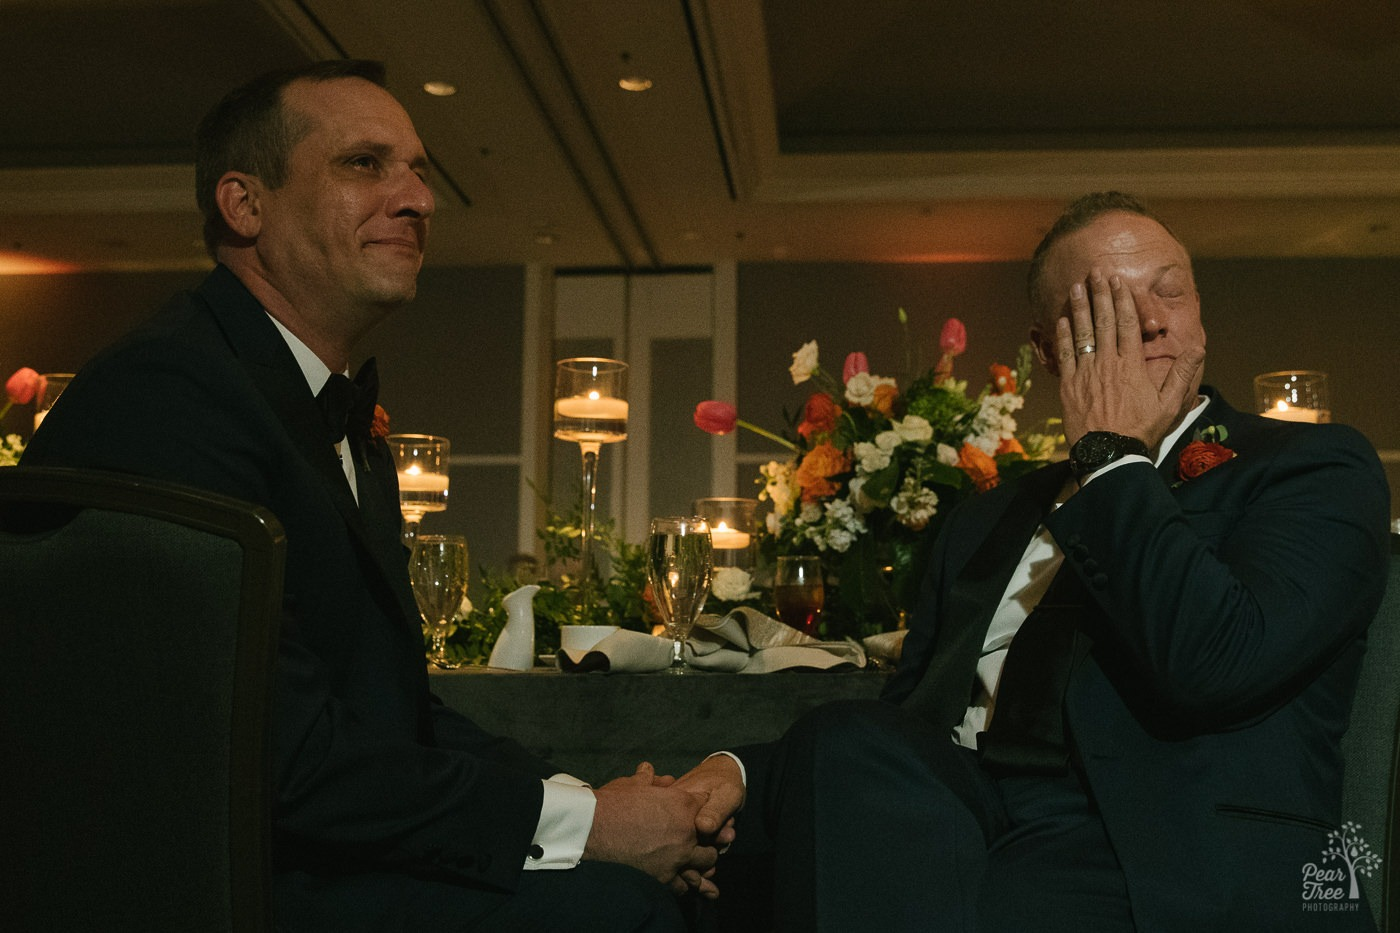 Grooms holding hands and one wiping away tears during wedding toasts.